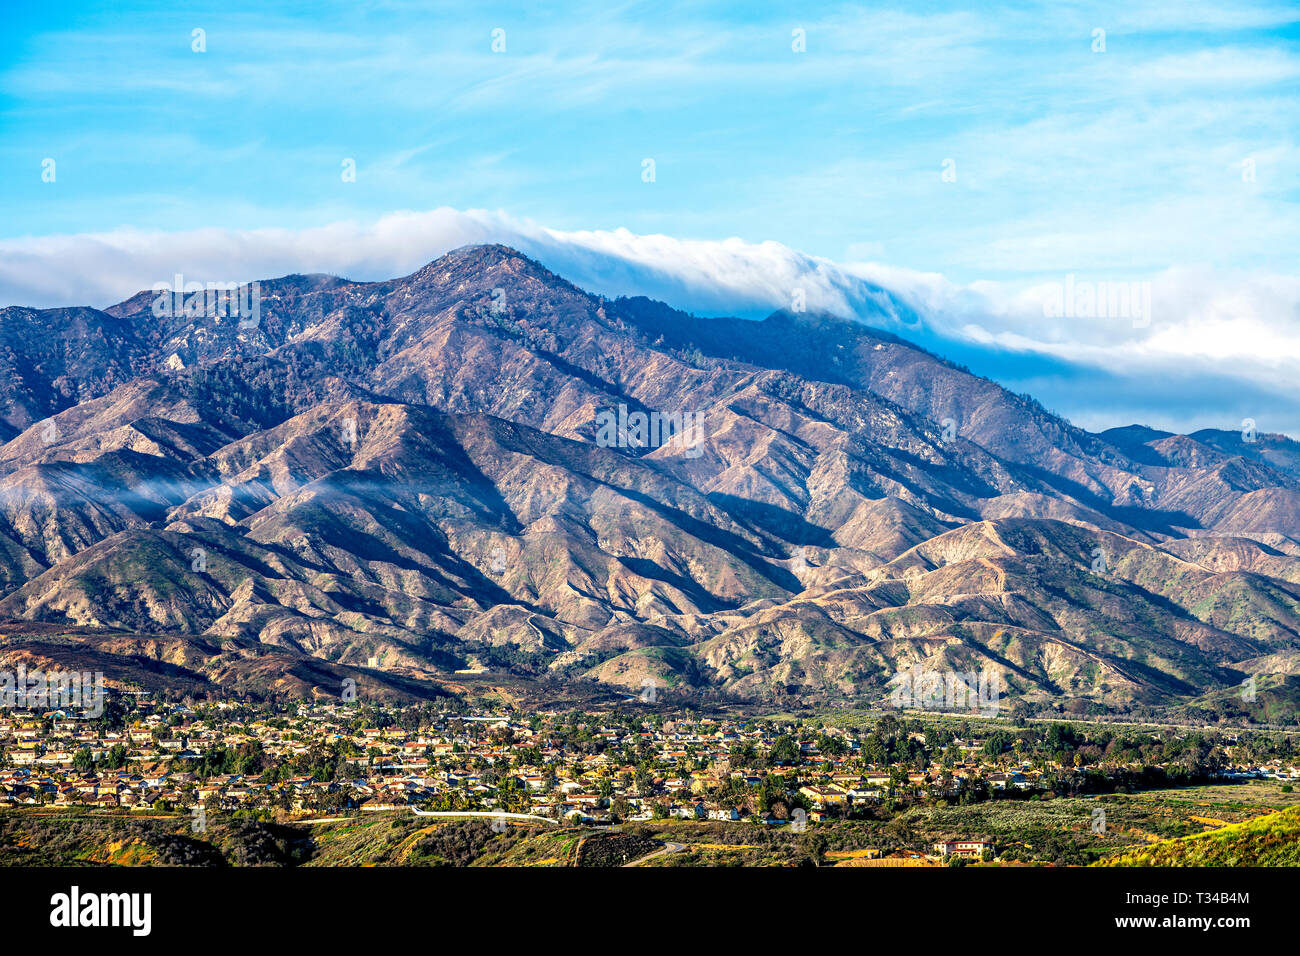 A view of a small city in Lake Elsinore framed against a rugged mountainside. - Stock Image